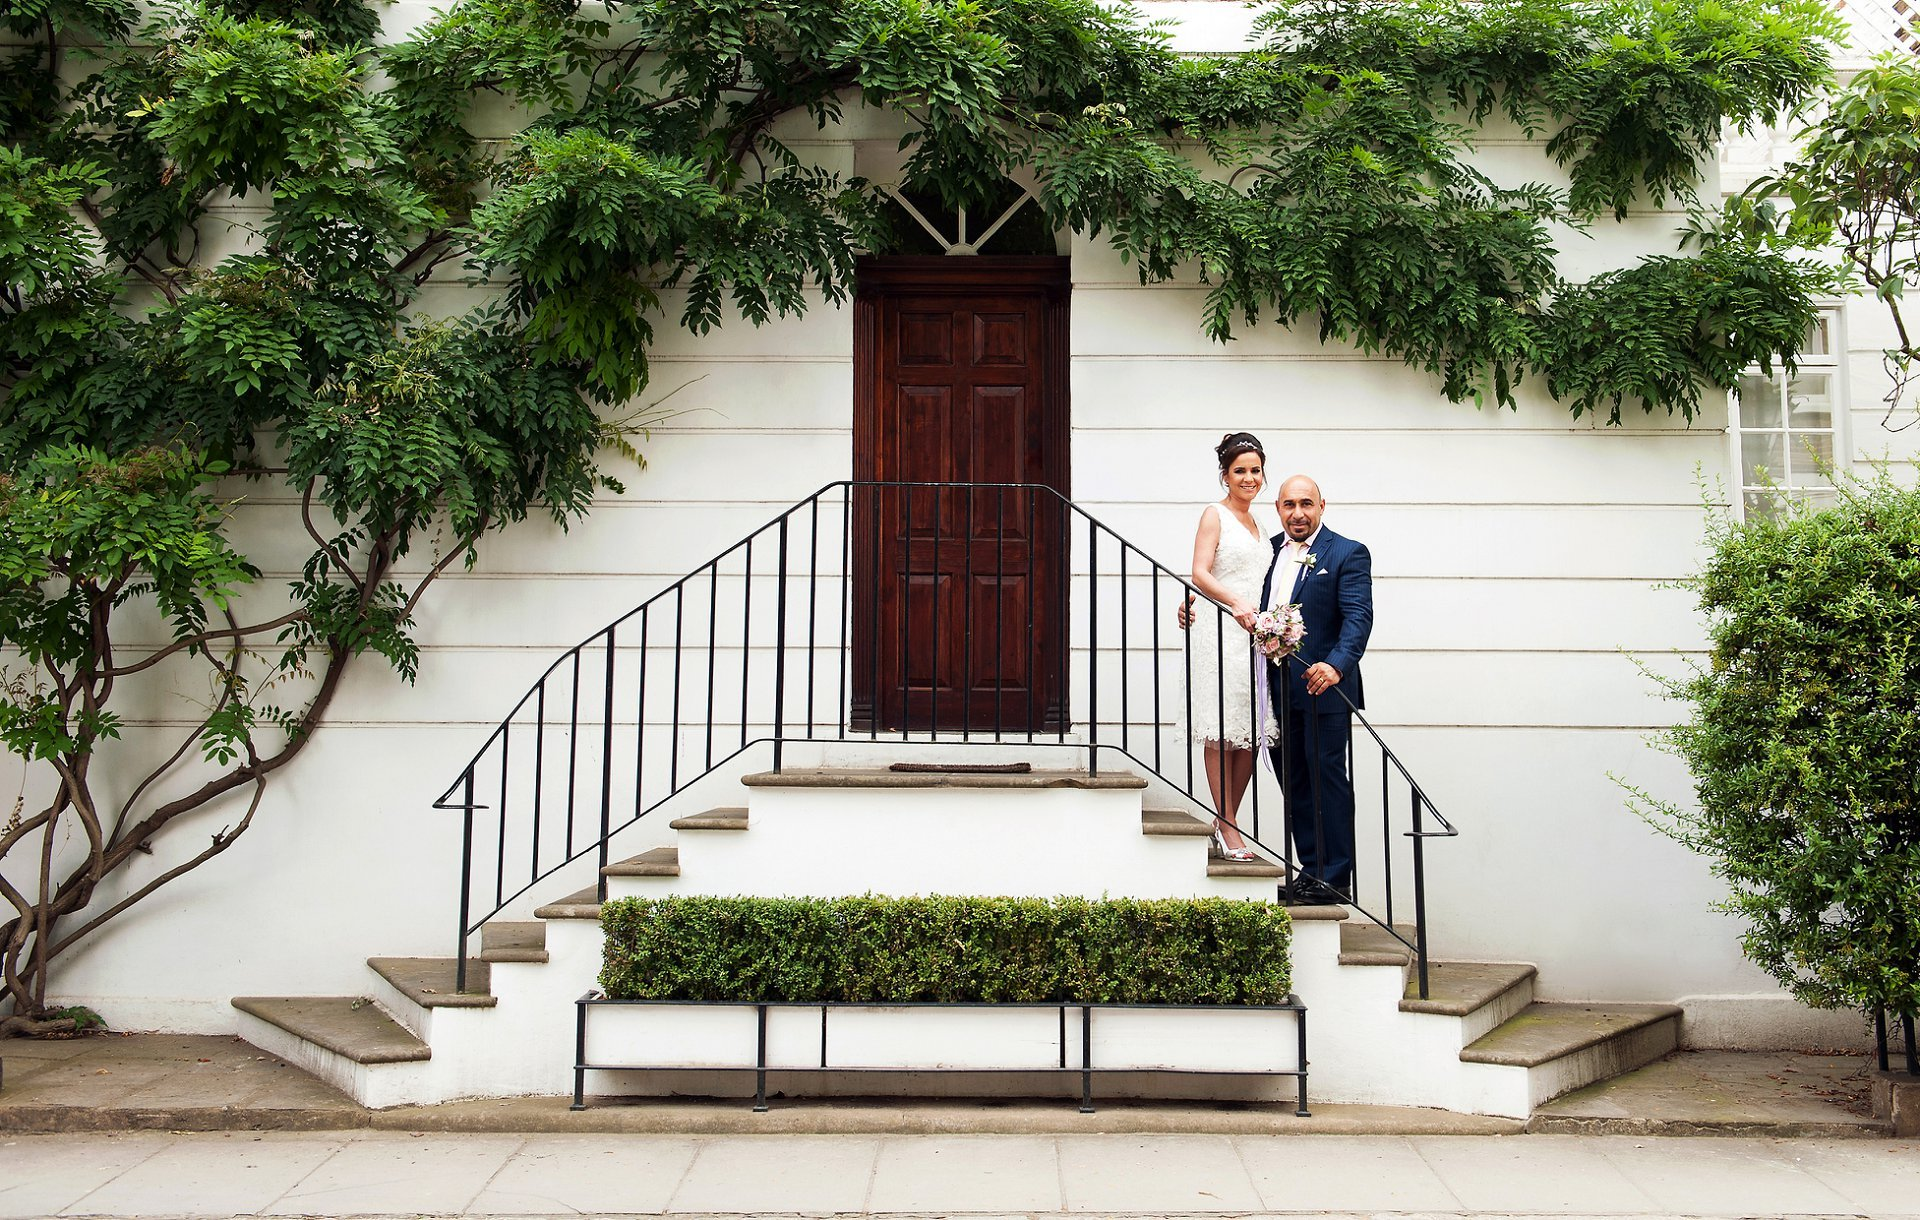 Wisteria branches and leaves and a pretty Chelsea building make an ideal backdrop for wedding photos